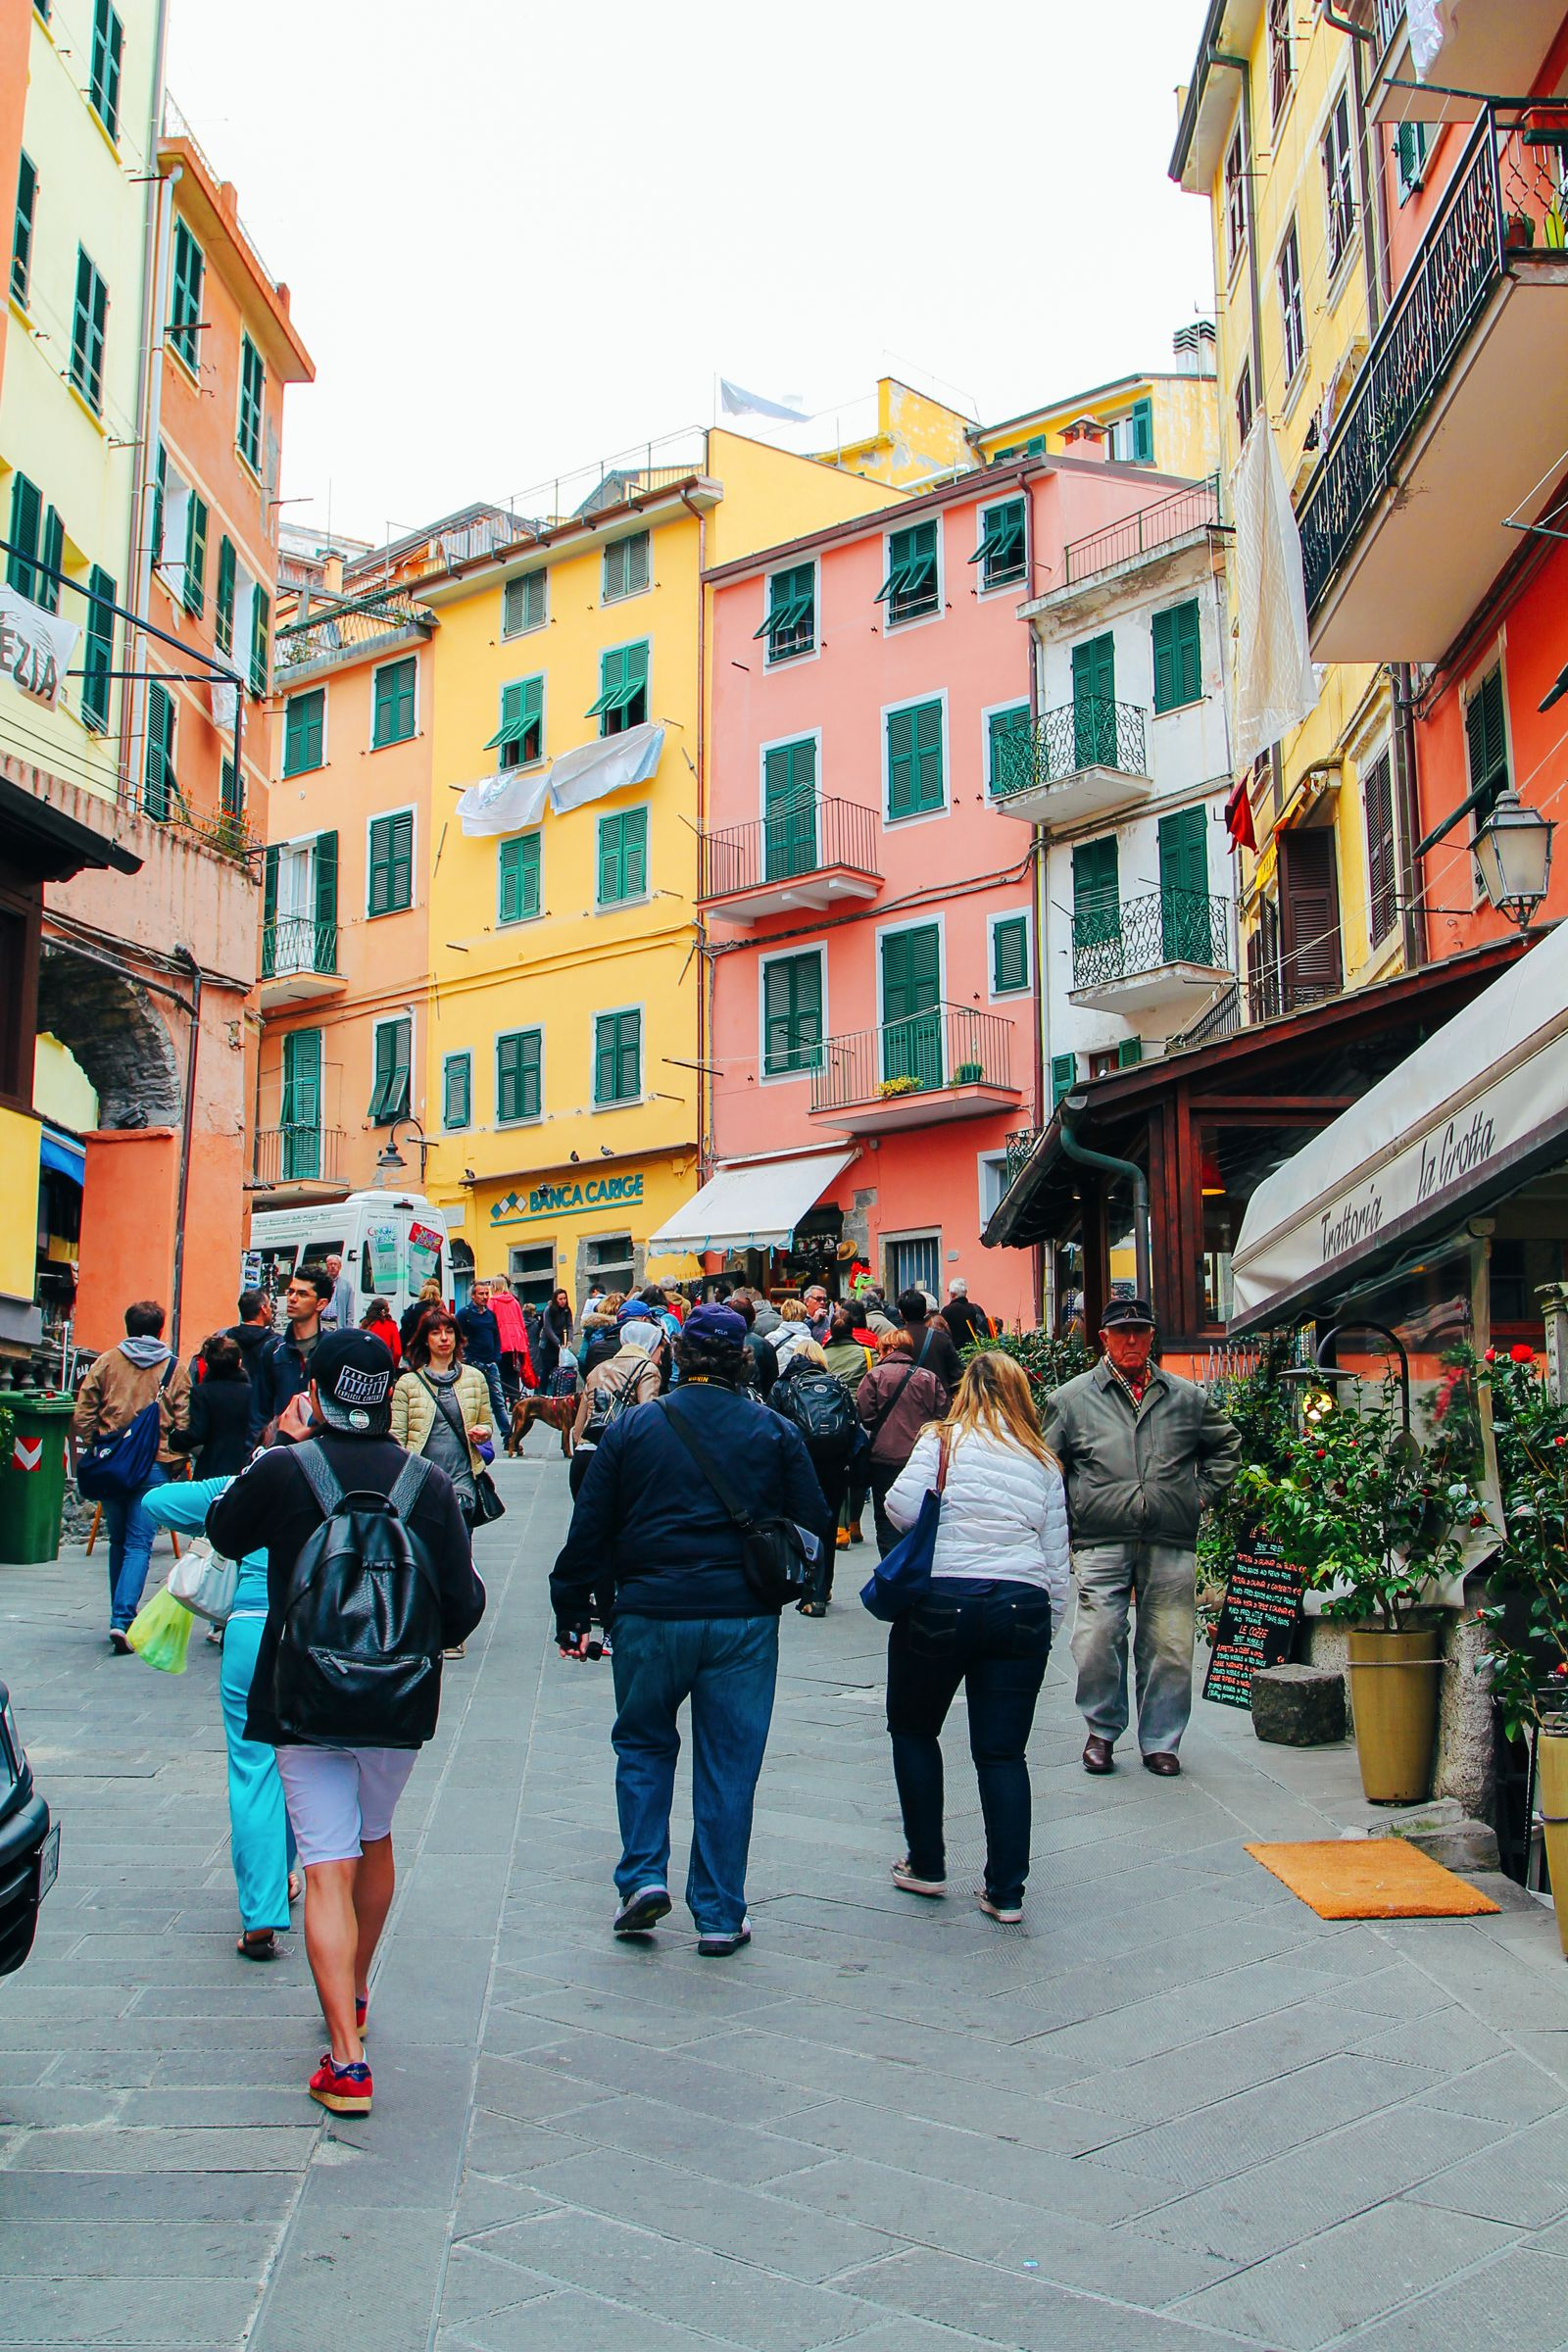 Riomaggiore in Cinque Terre, Italy - The Photo Diary! [1 of 5] (22)